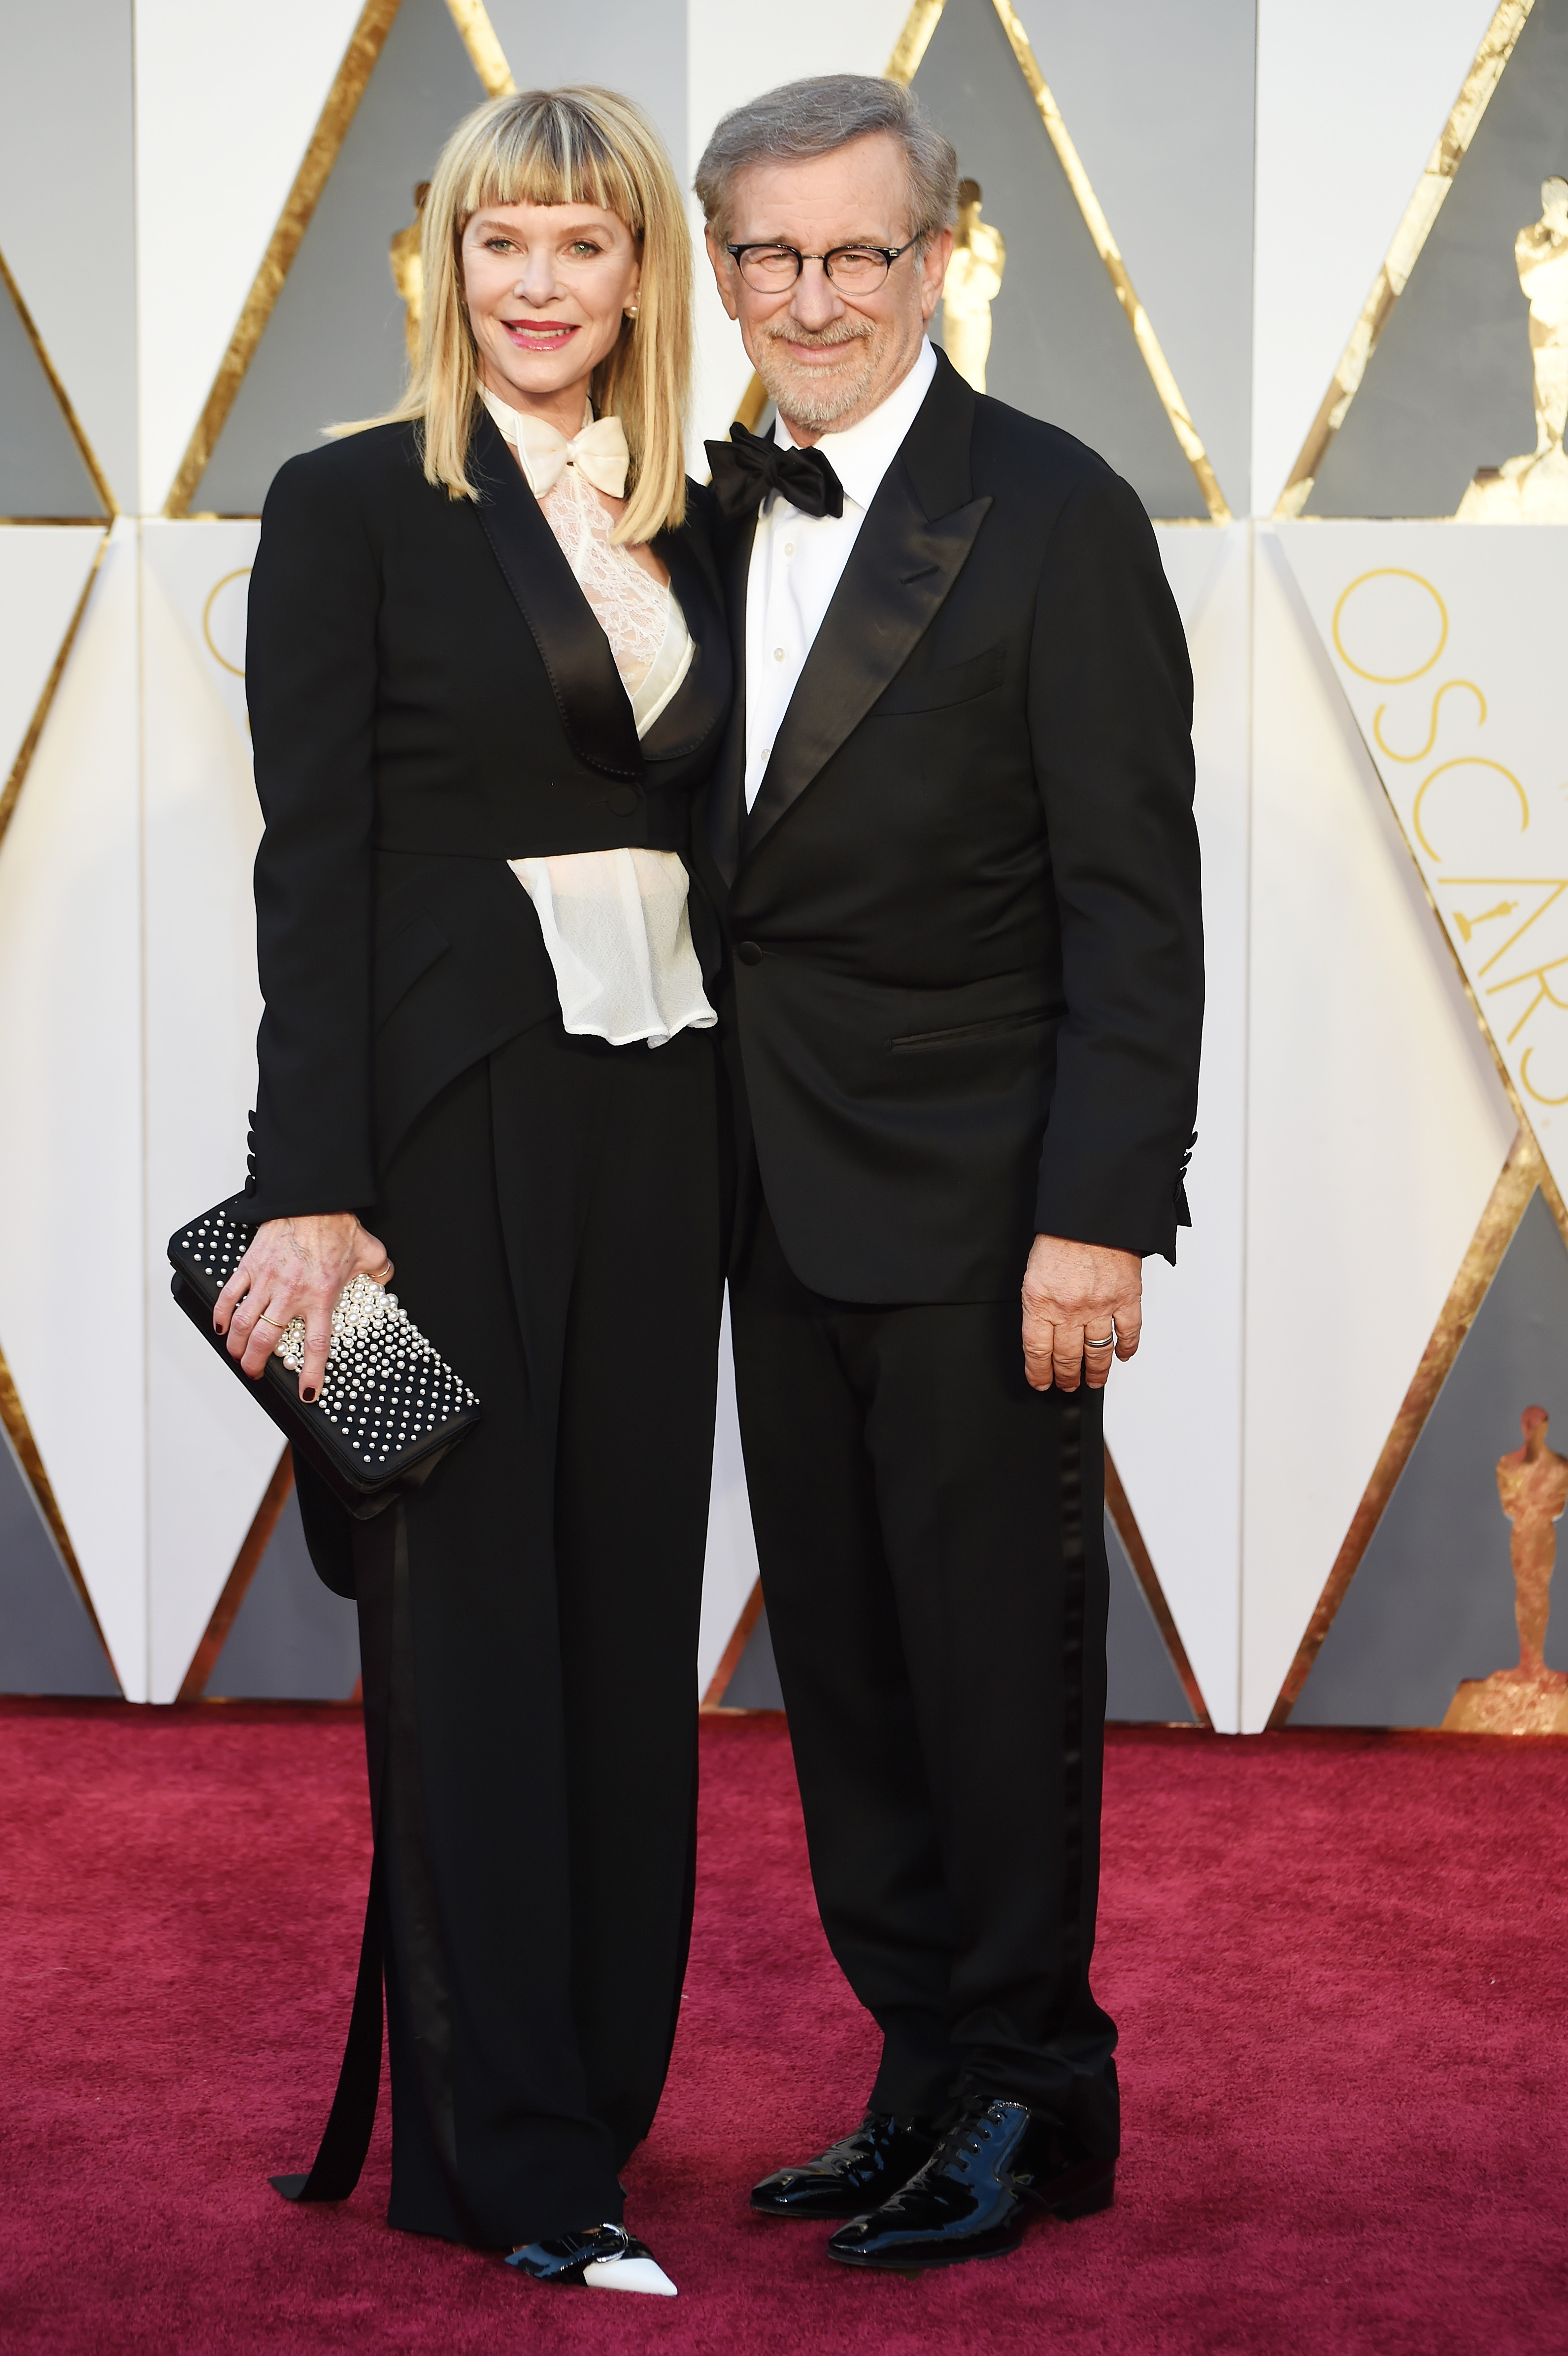 Kate Capshaw and Steven Spielberg attend the 88th Annual Academy Awards on Feb. 28, 2016 in Hollywood, Calif.